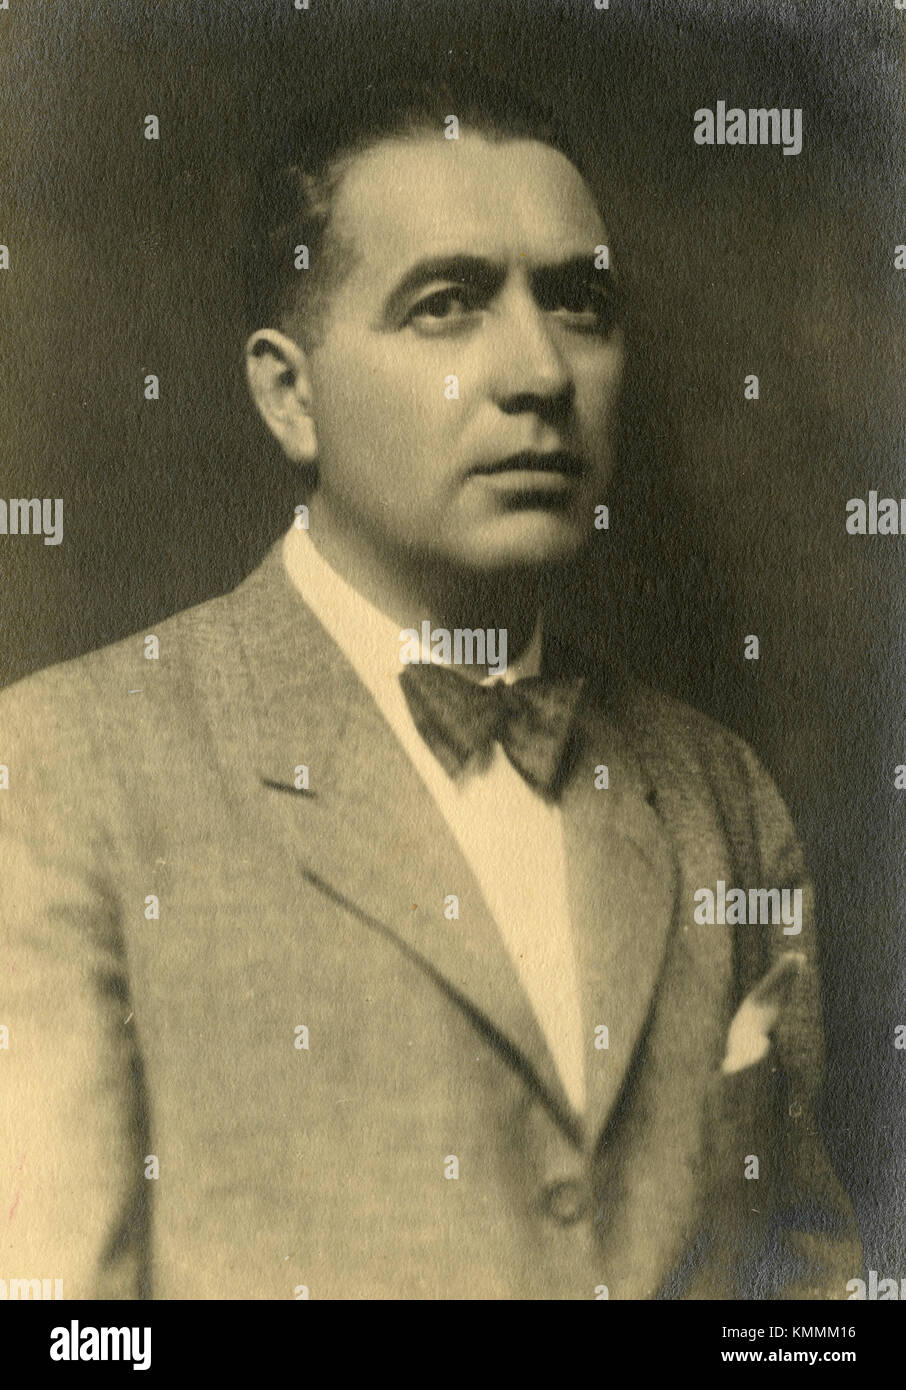 Man with bow-tie, Italy 1930s - Stock Image